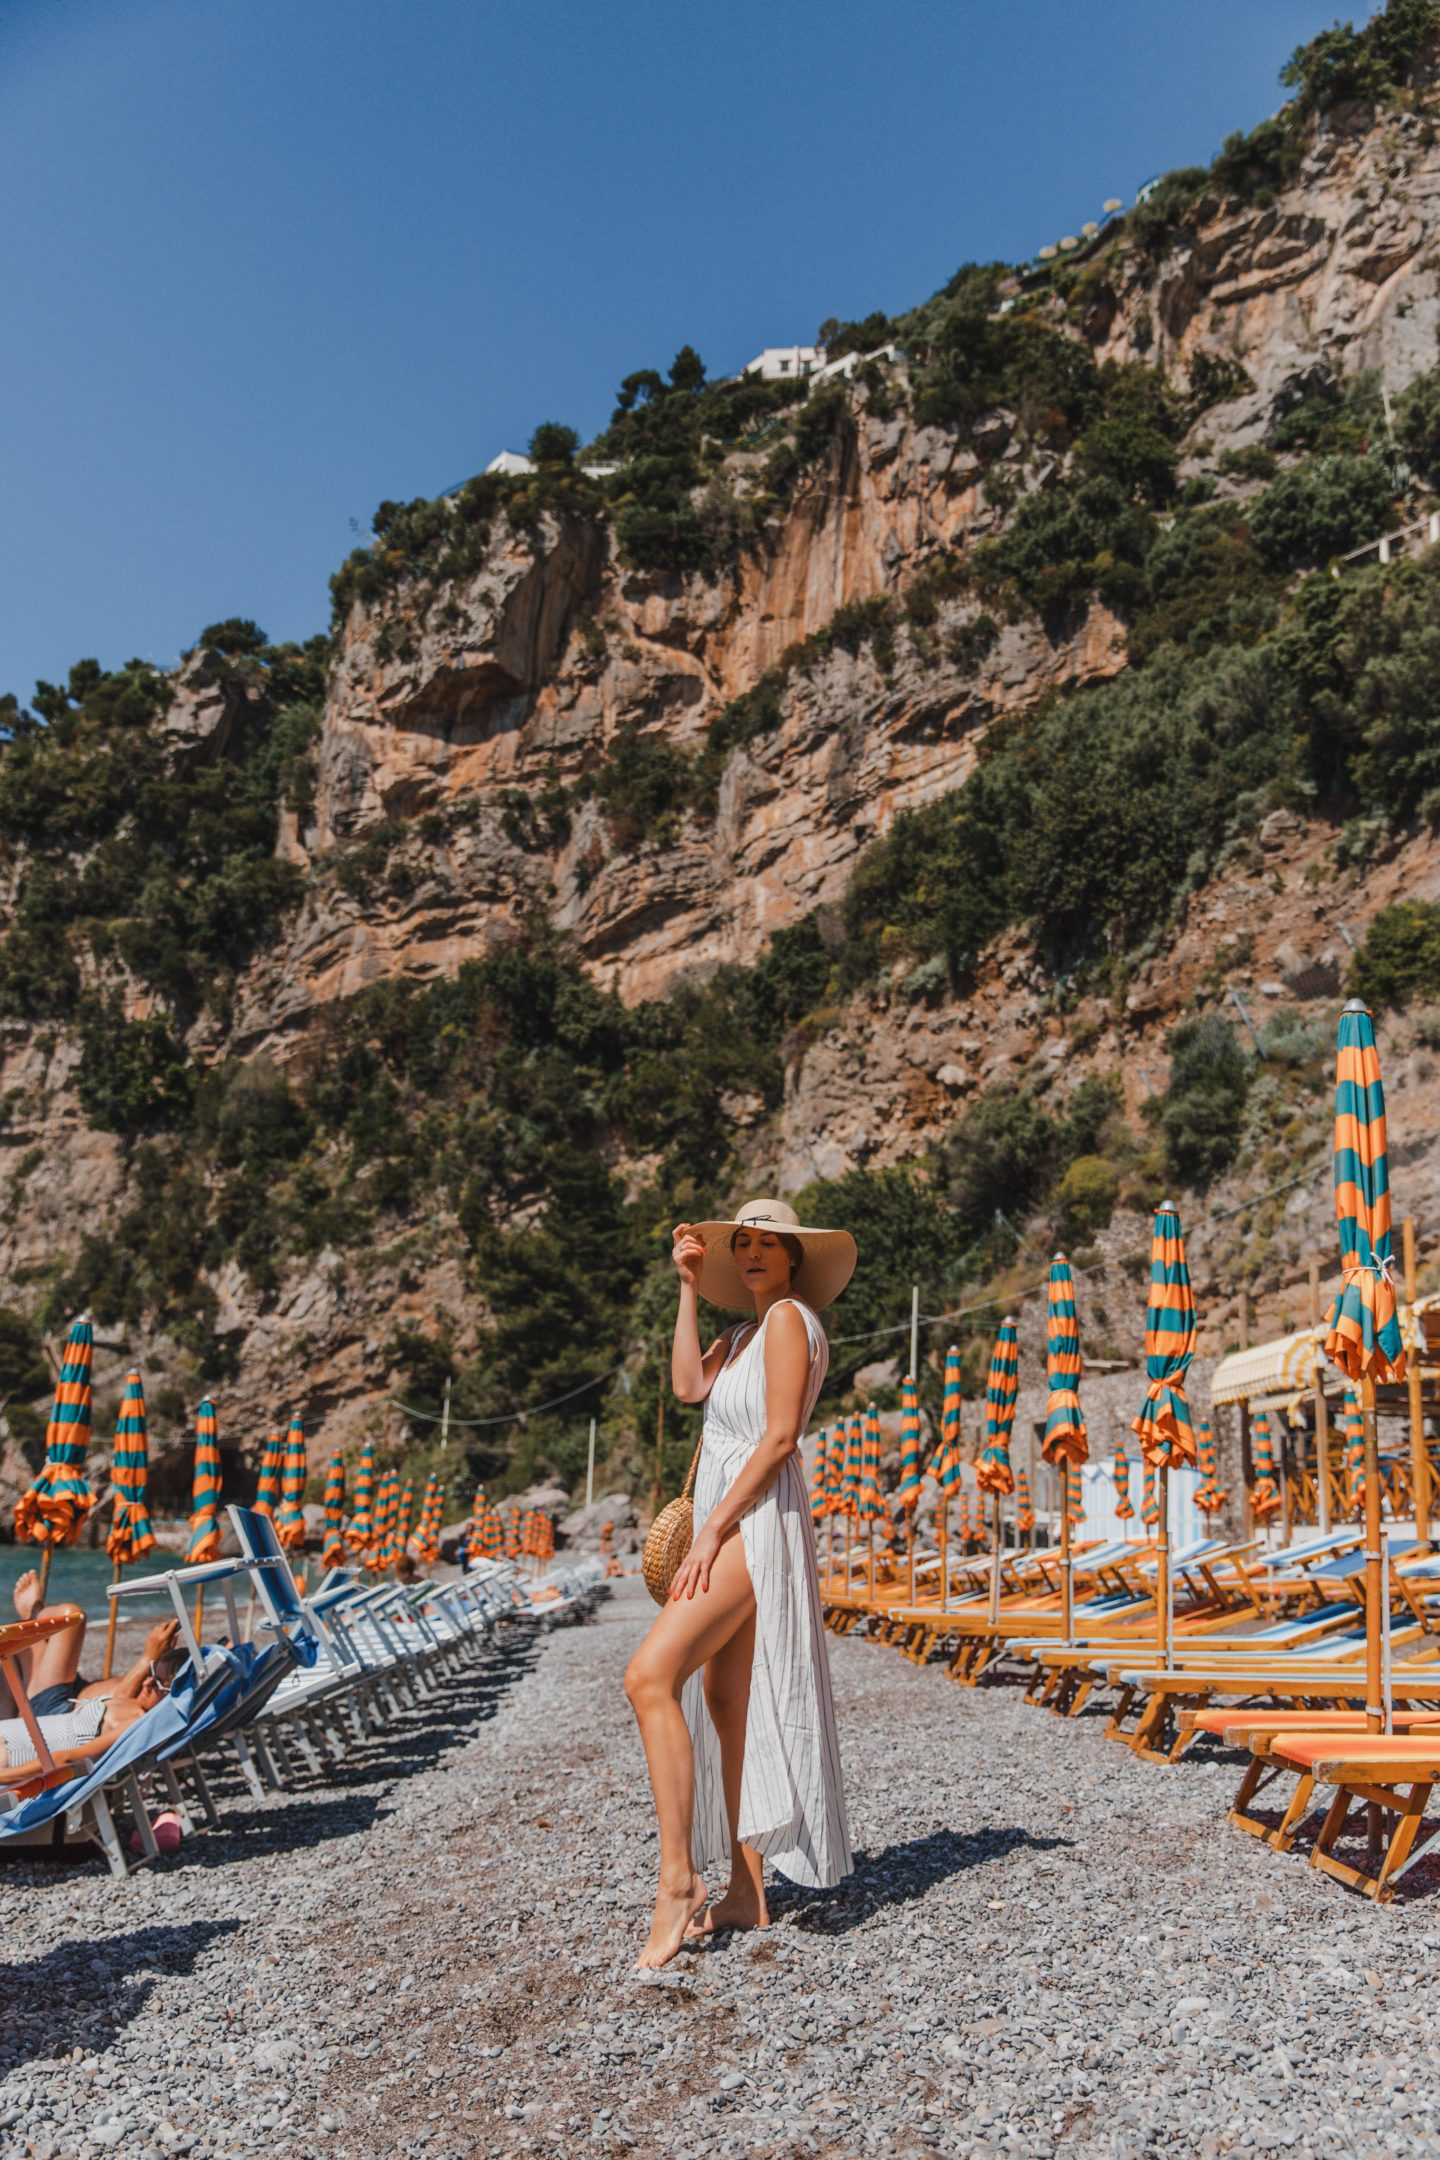 The Best Positano Instagram Shots | 12 Beautiful Shots You Can't Miss: Fornillo Beach